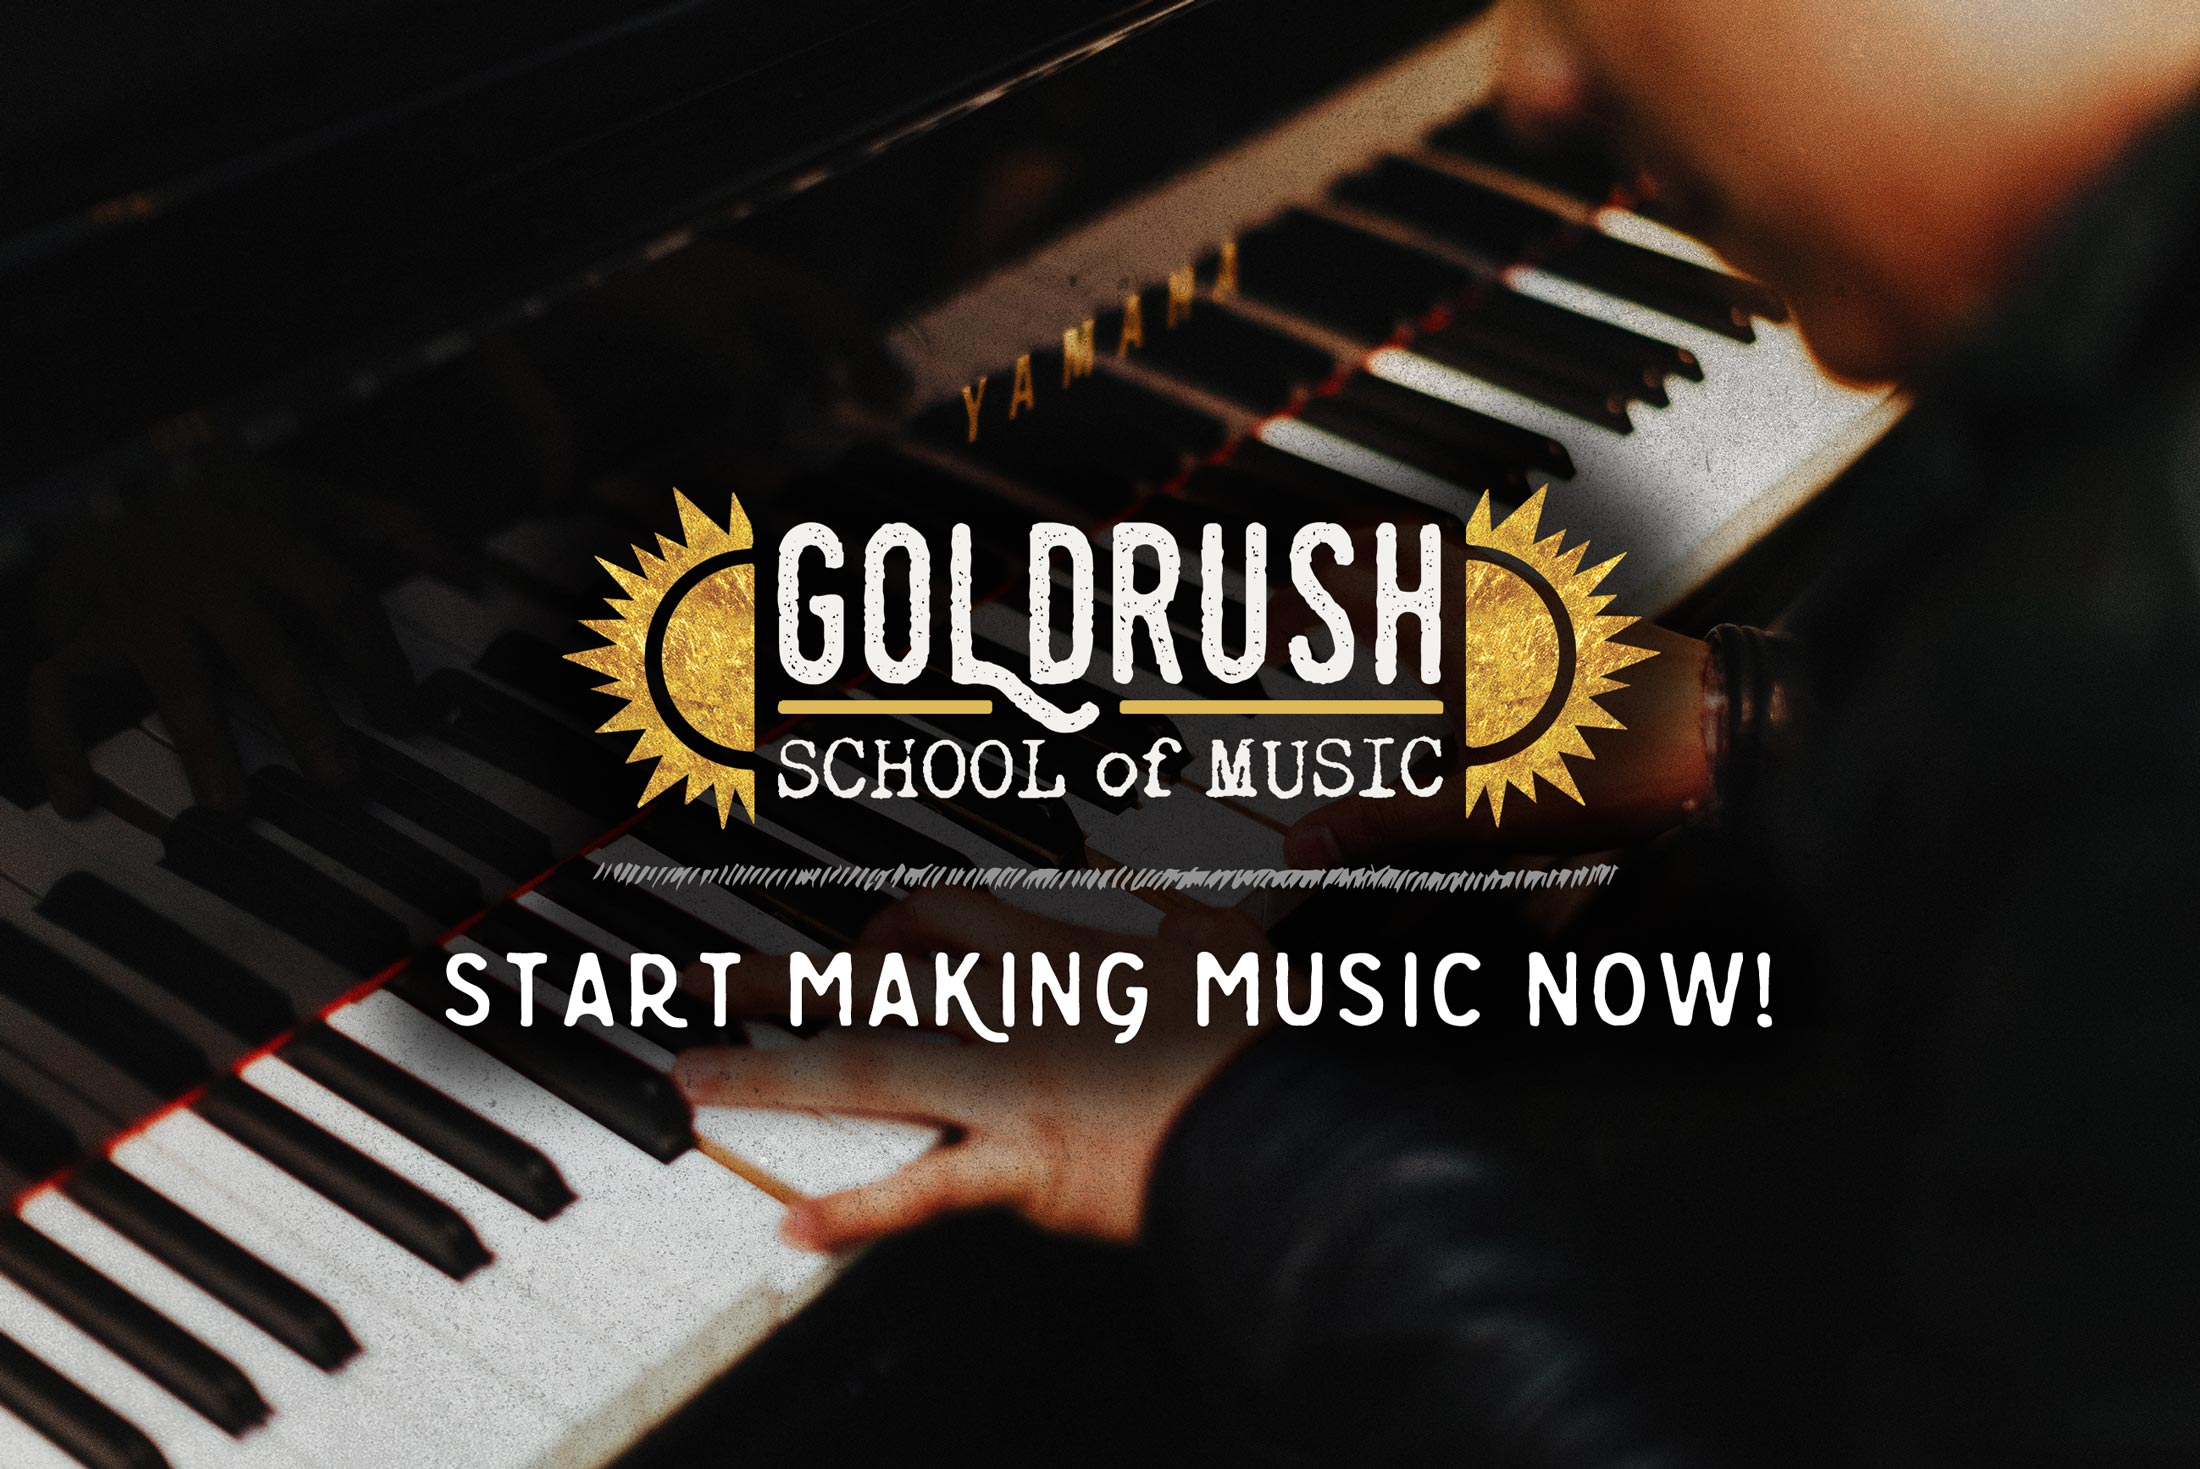 Goldrush School of Music - Music Lessons for All Ages